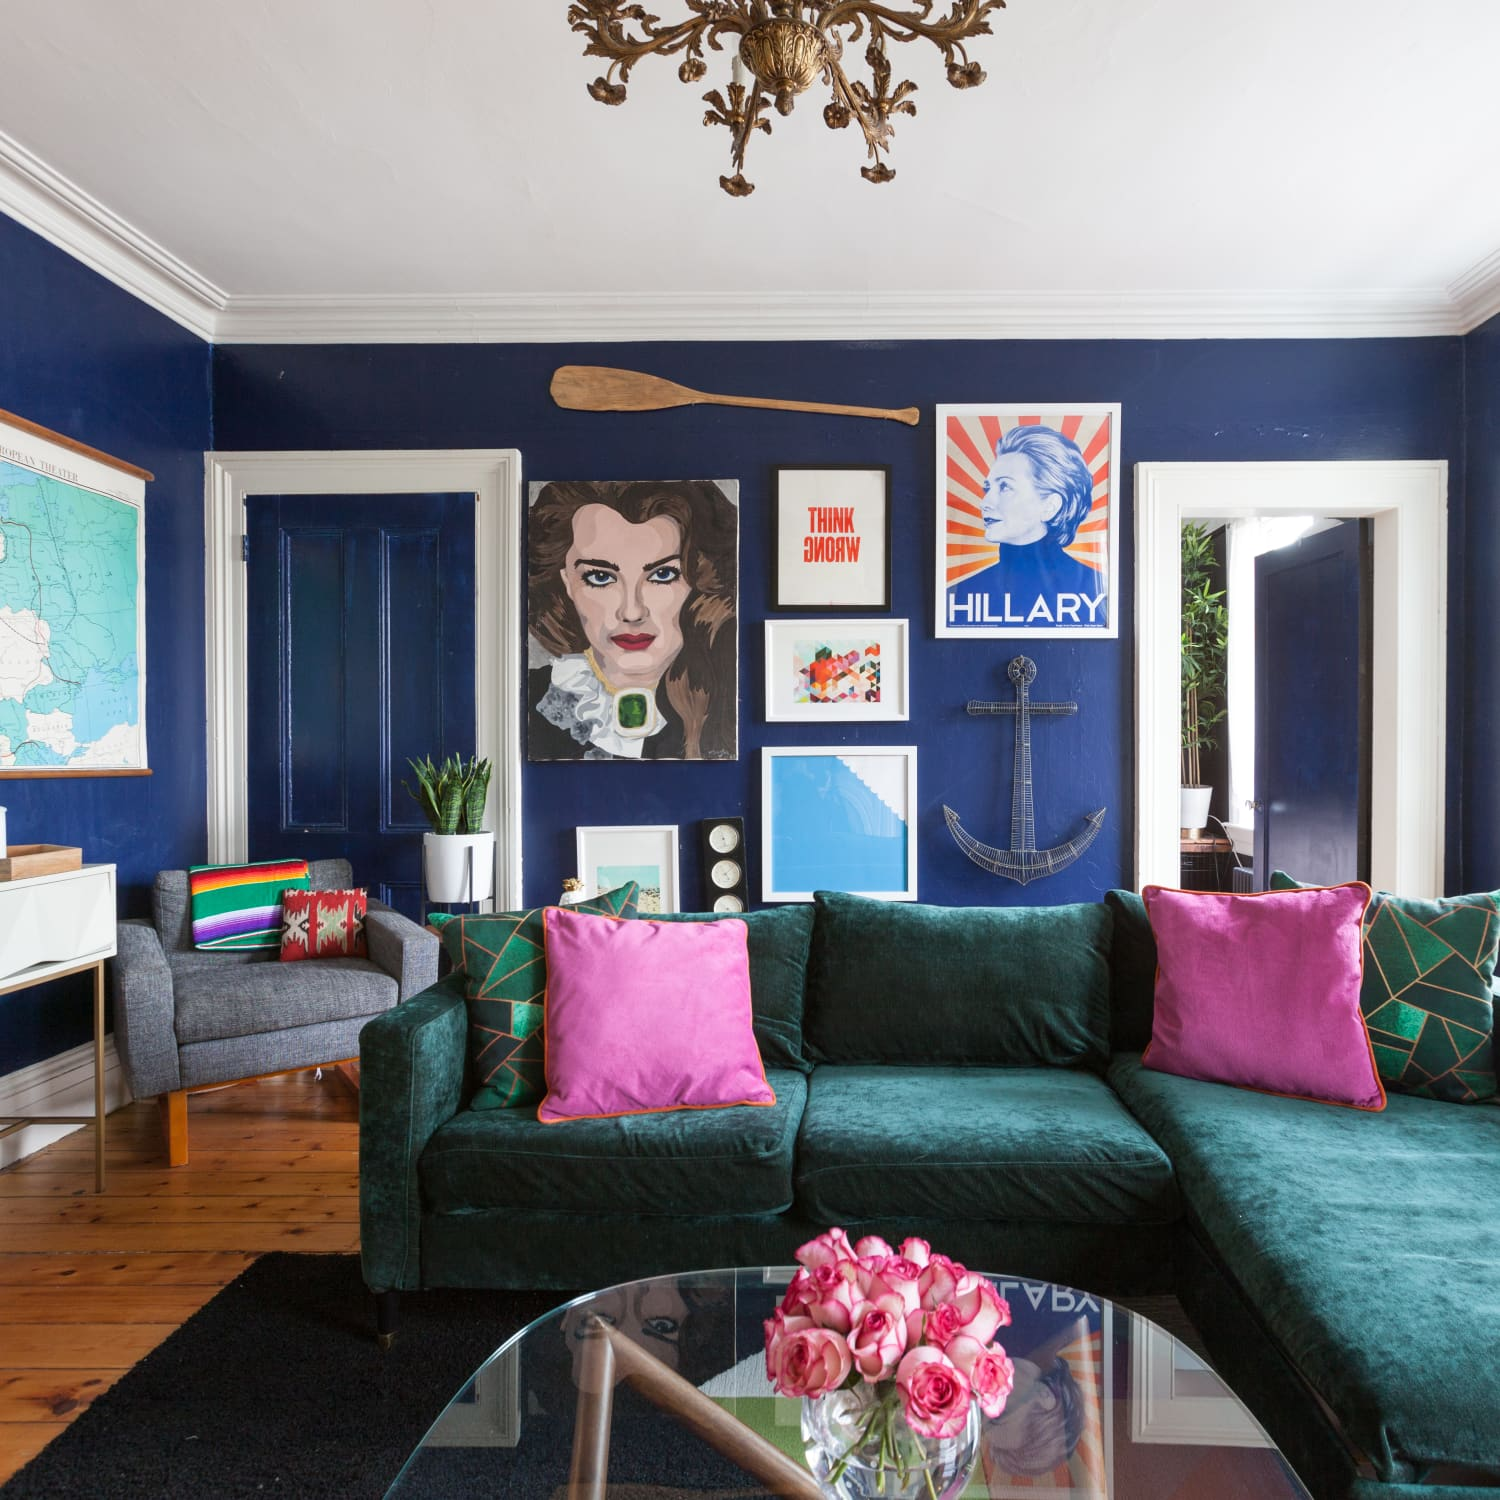 The Best Blue Living Room Wall Colors, According to Real ...